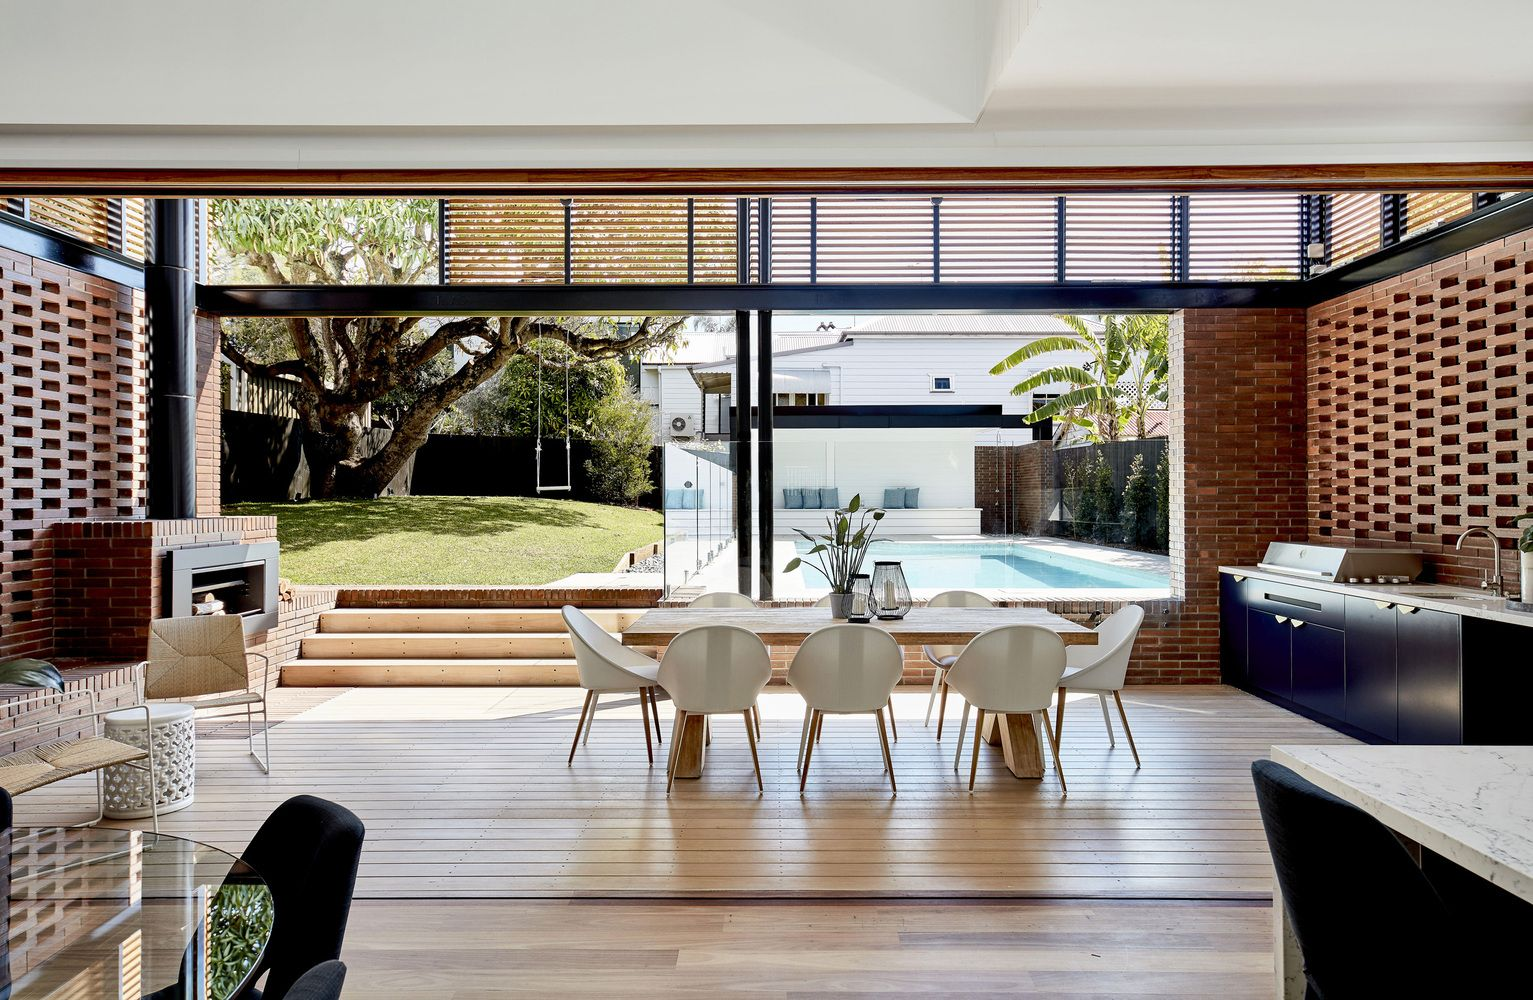 Arredi Per Piscine Esterne gallery of sydney street house / fouché architects - 10